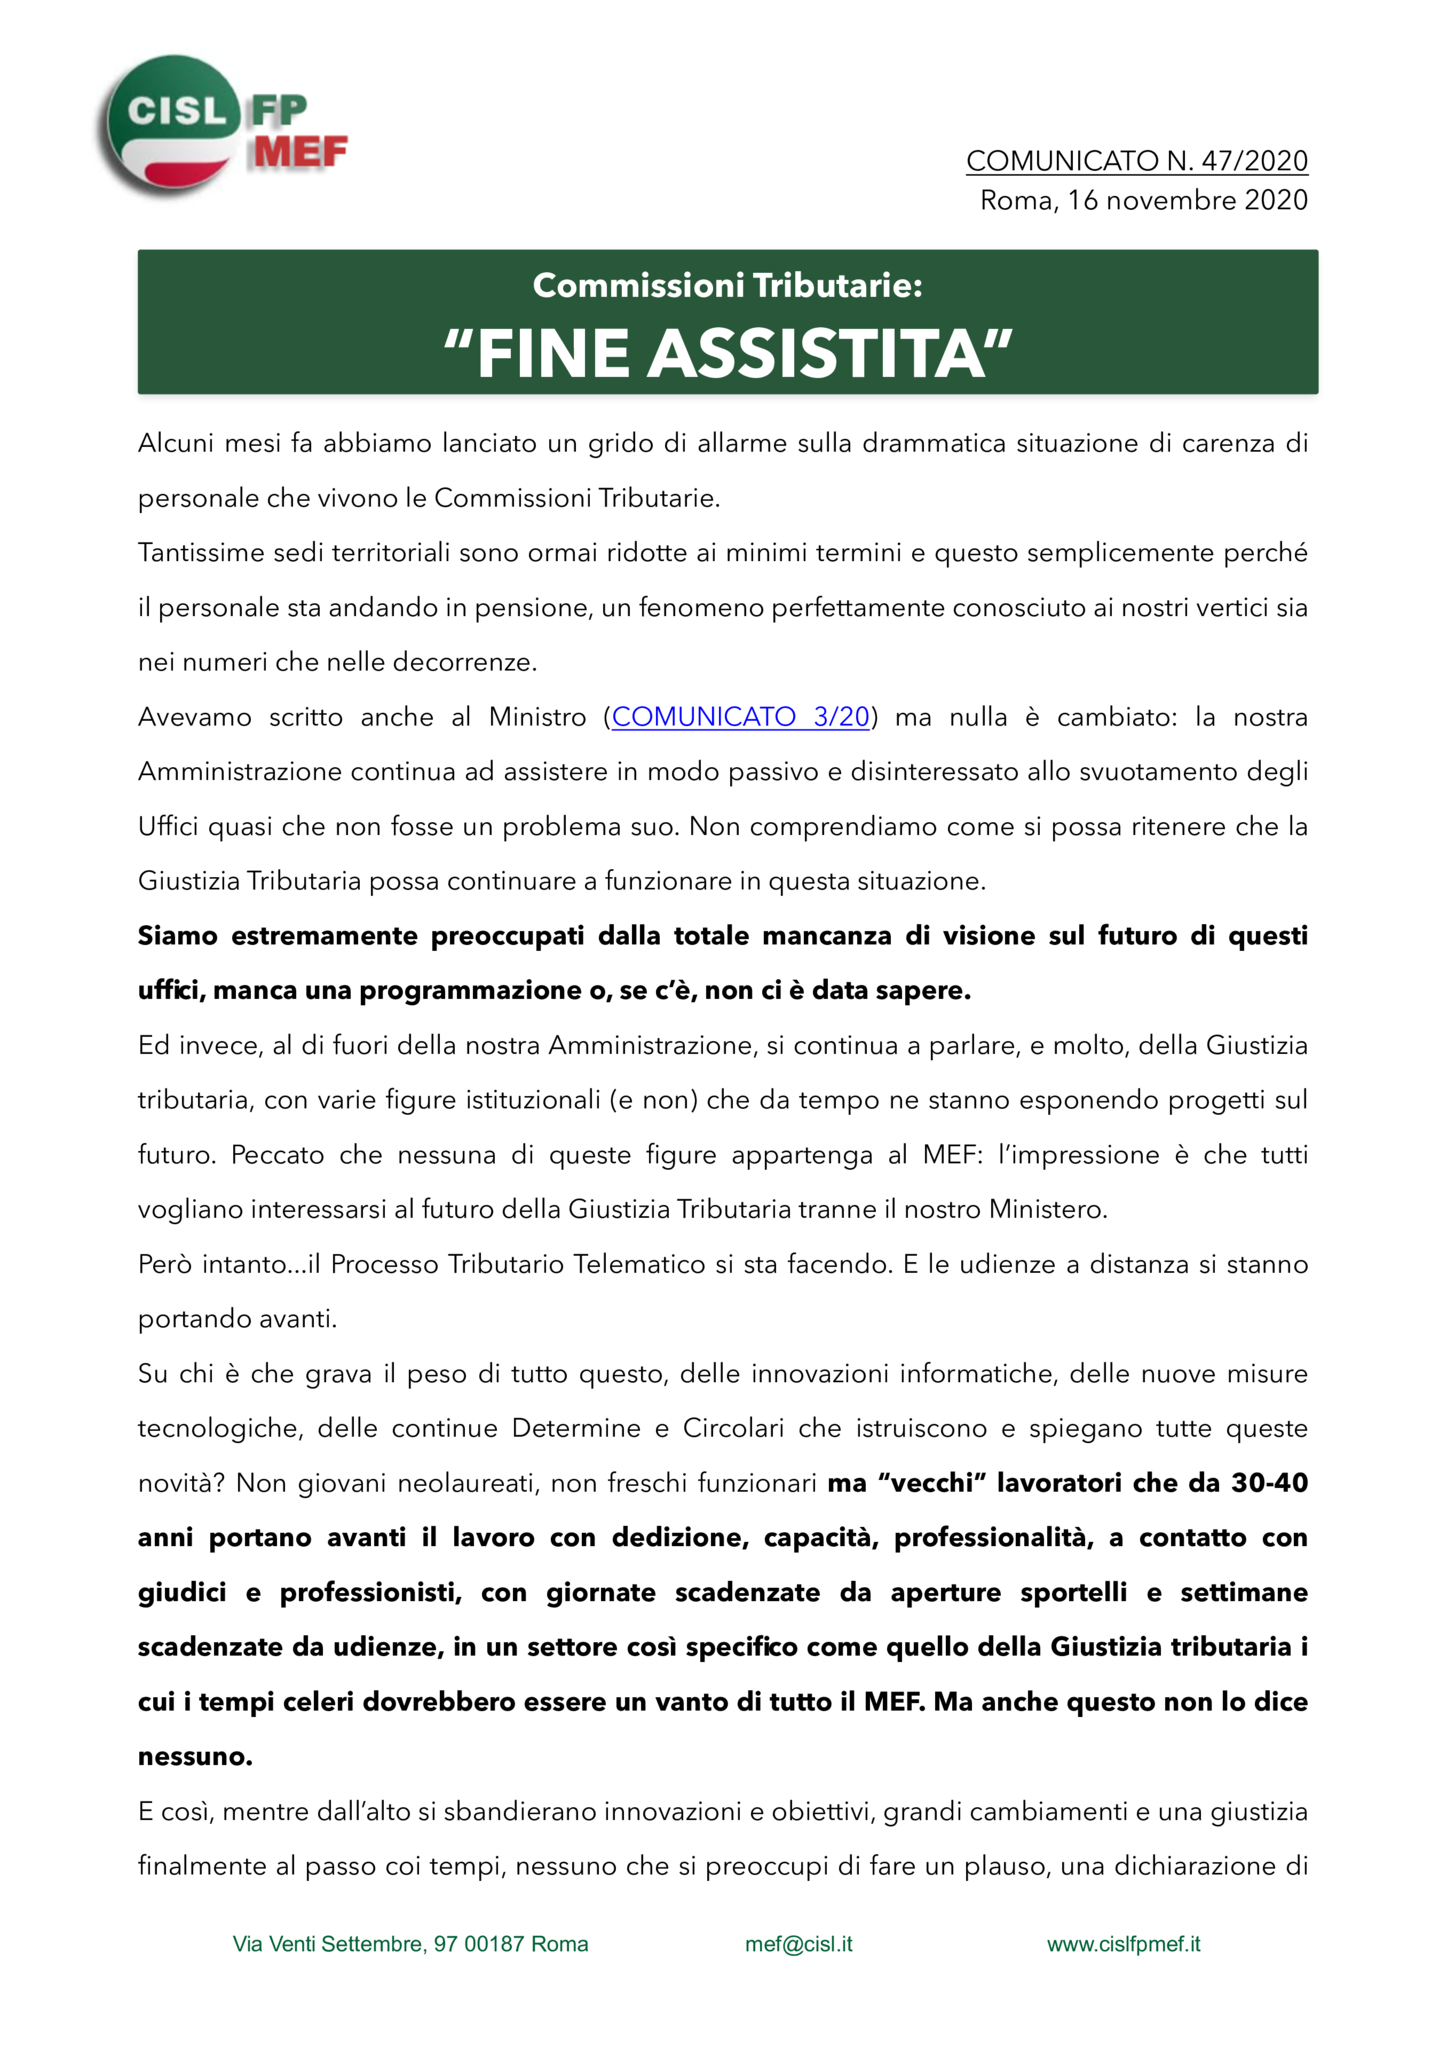 thumbnail of 47:20 COMUNICATO – Commissioni Tributarie- FINE ASSISTITA